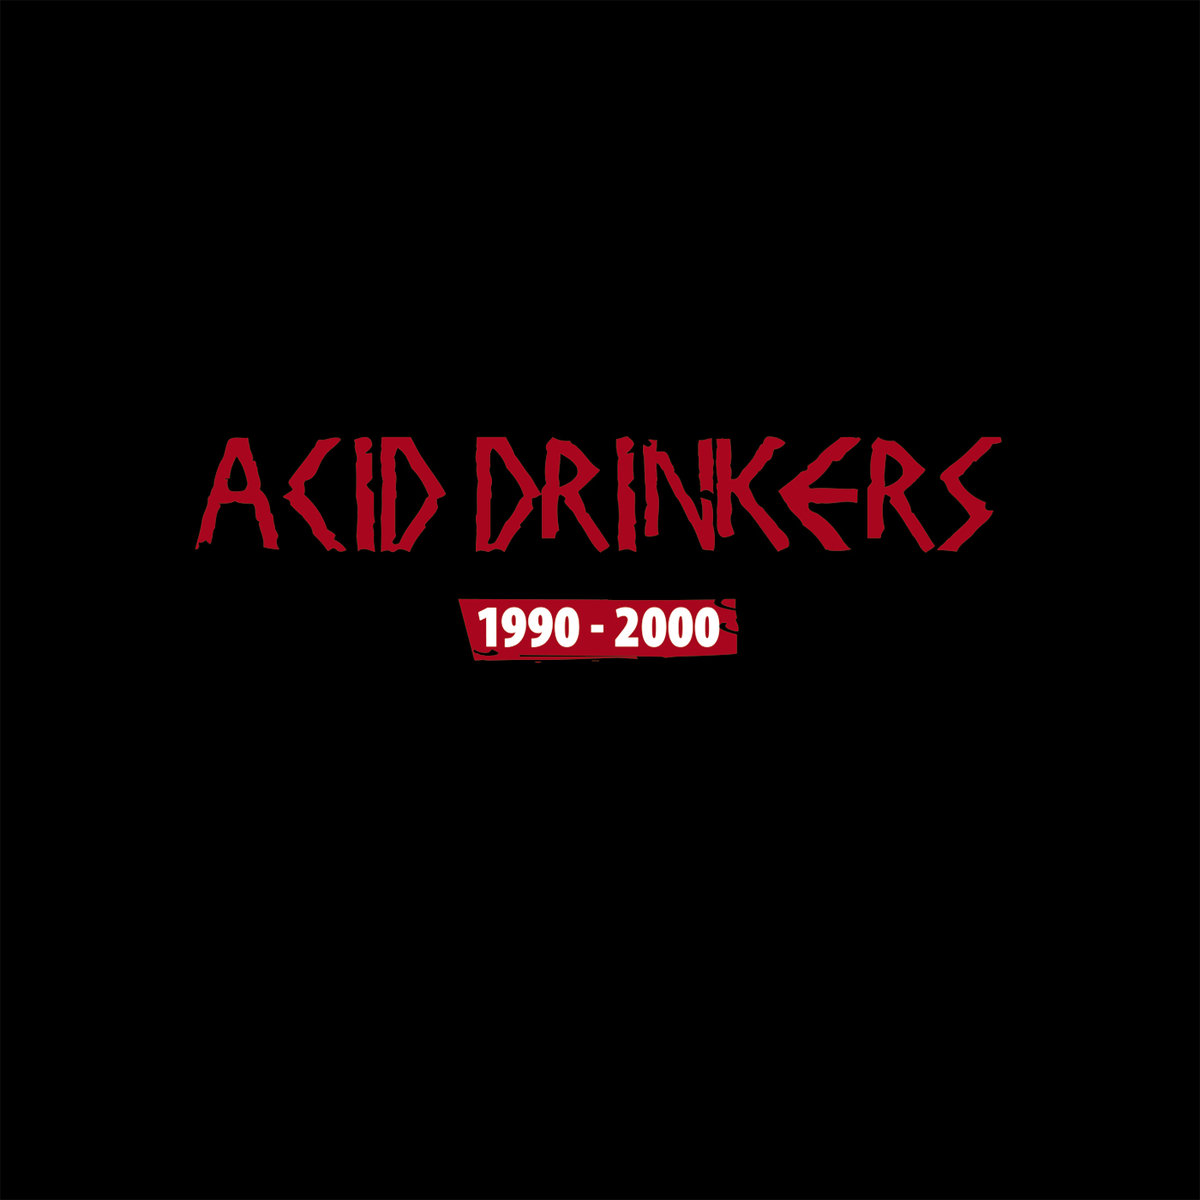 ACID DRINKERS - 1990-2000 (2019) [CD 2-DIRTY MONEY, DIRTY TRICKS (1991)] [WMA] [FALLEN ANGEL]